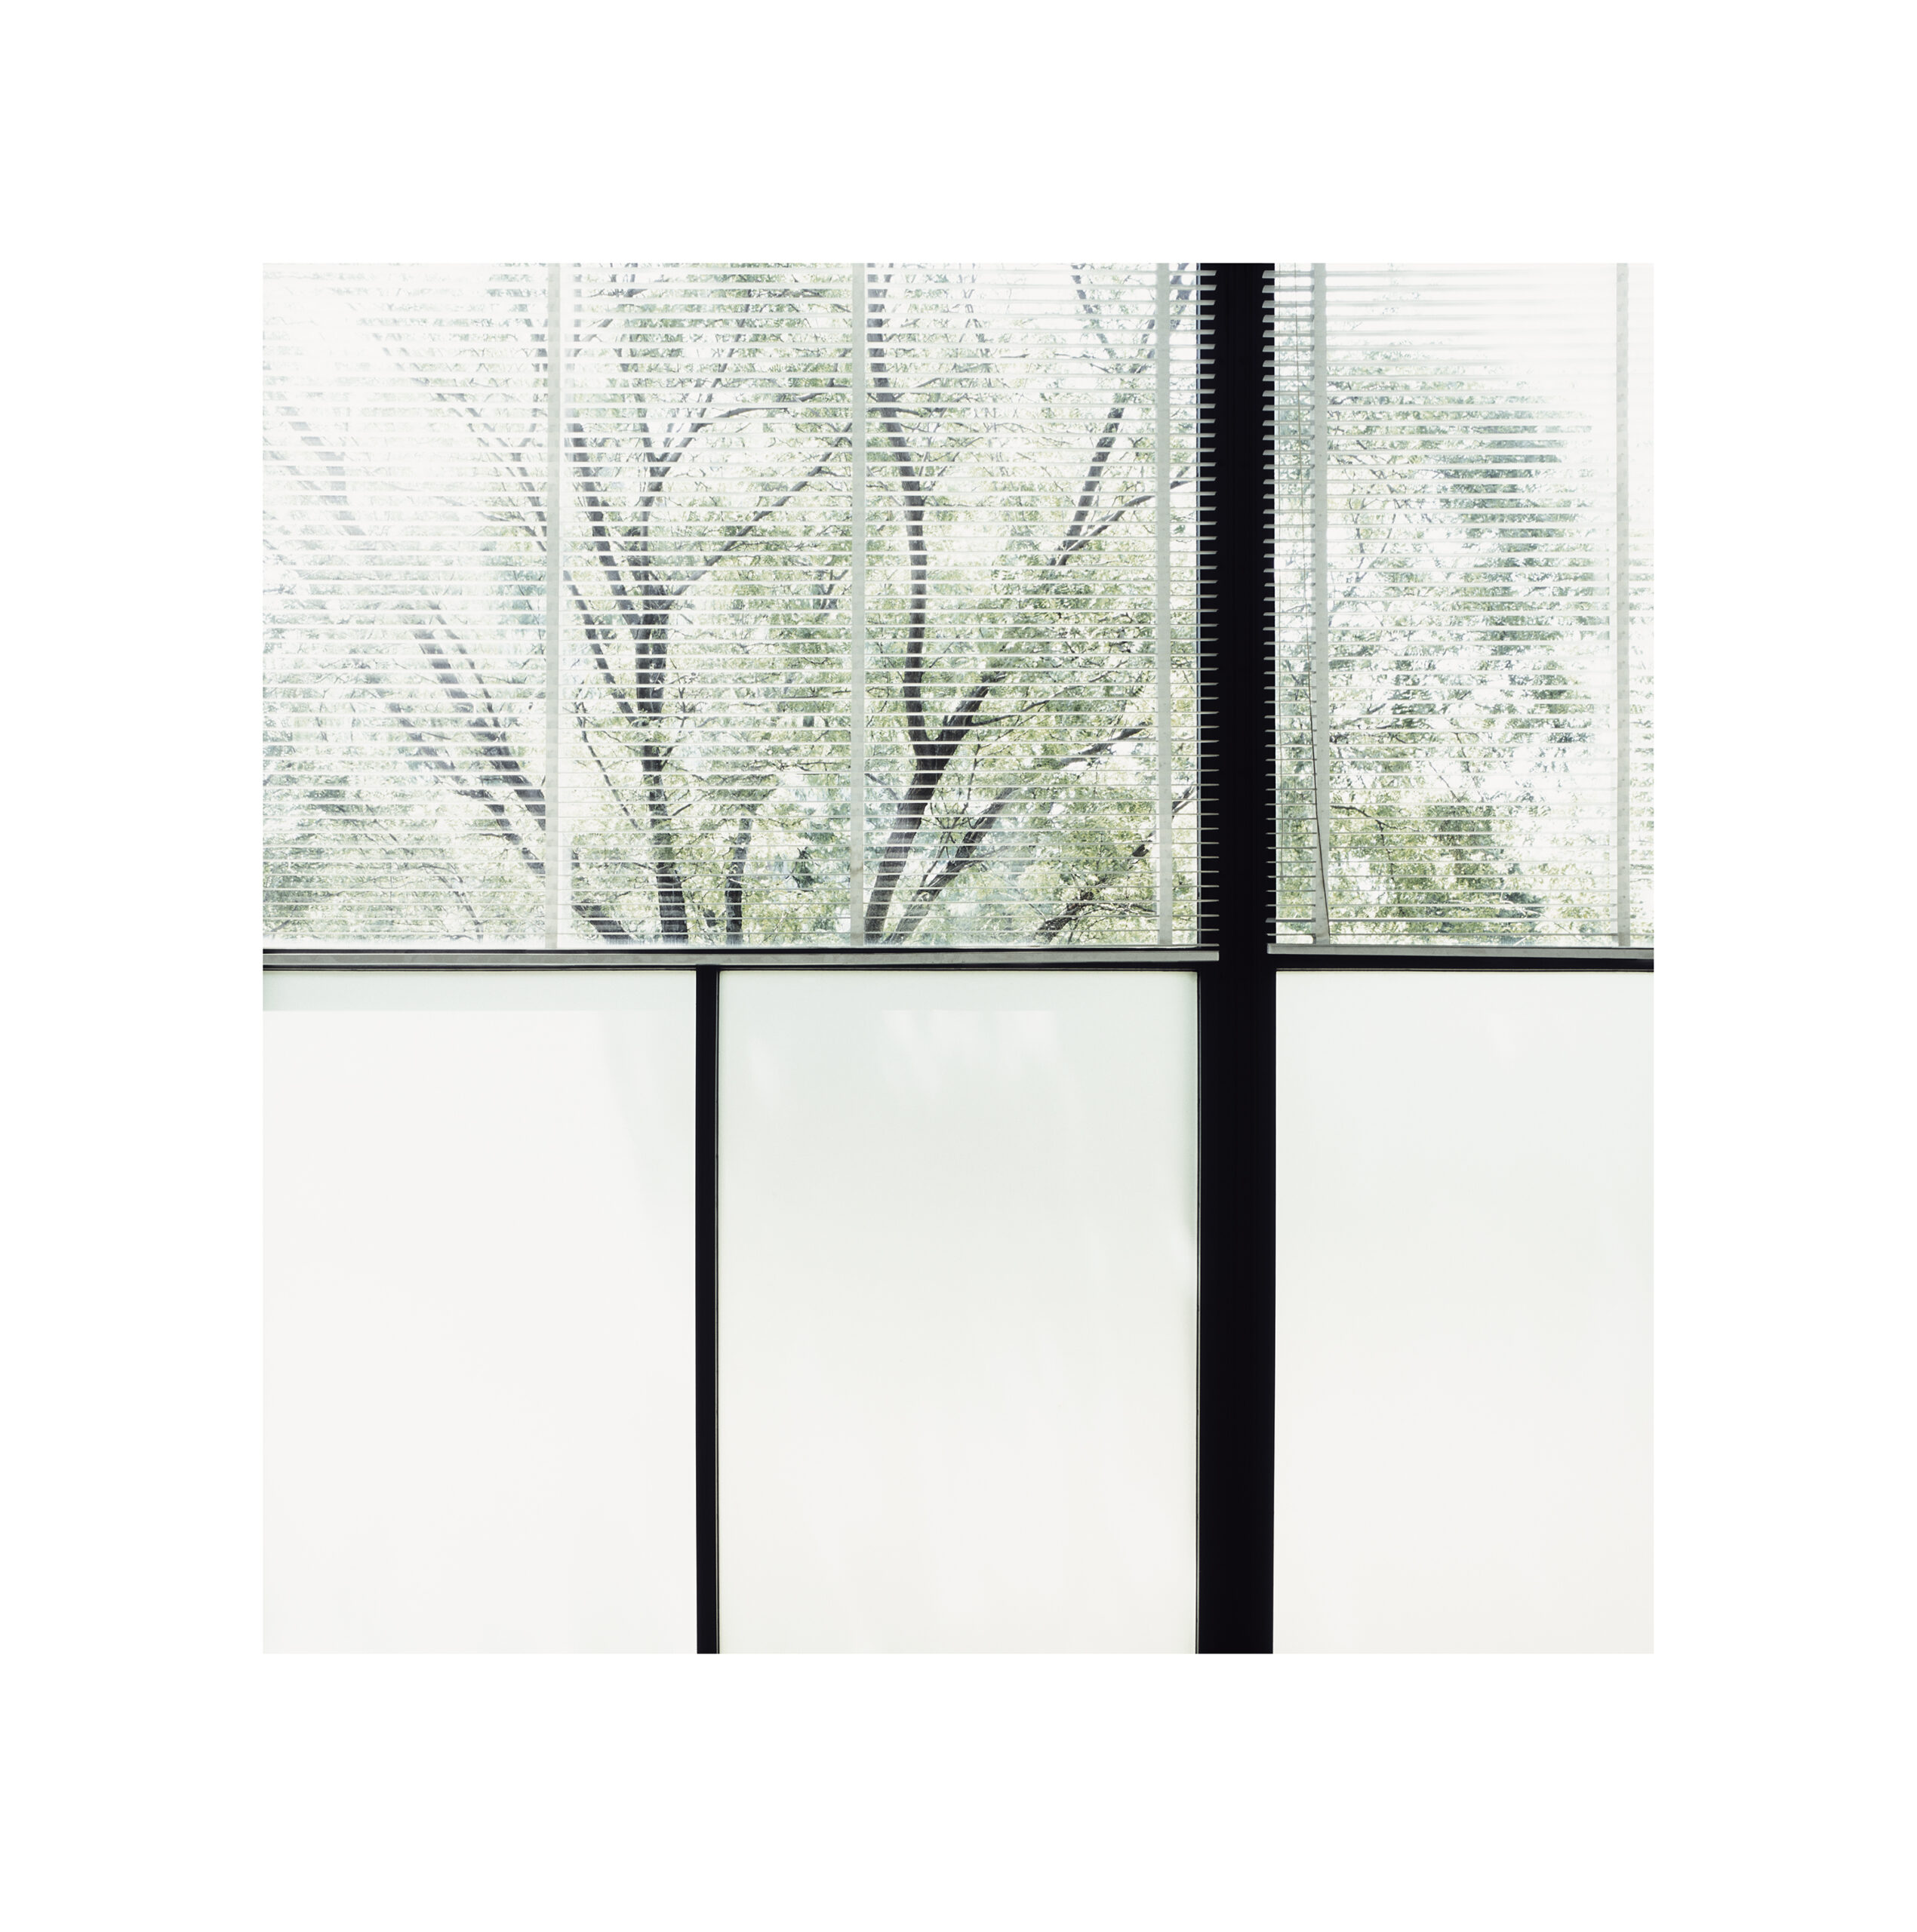 As part of the Autoritratto exhibition by Luisa Lambri, an image of a tree on the other side of a window with venetian blinds